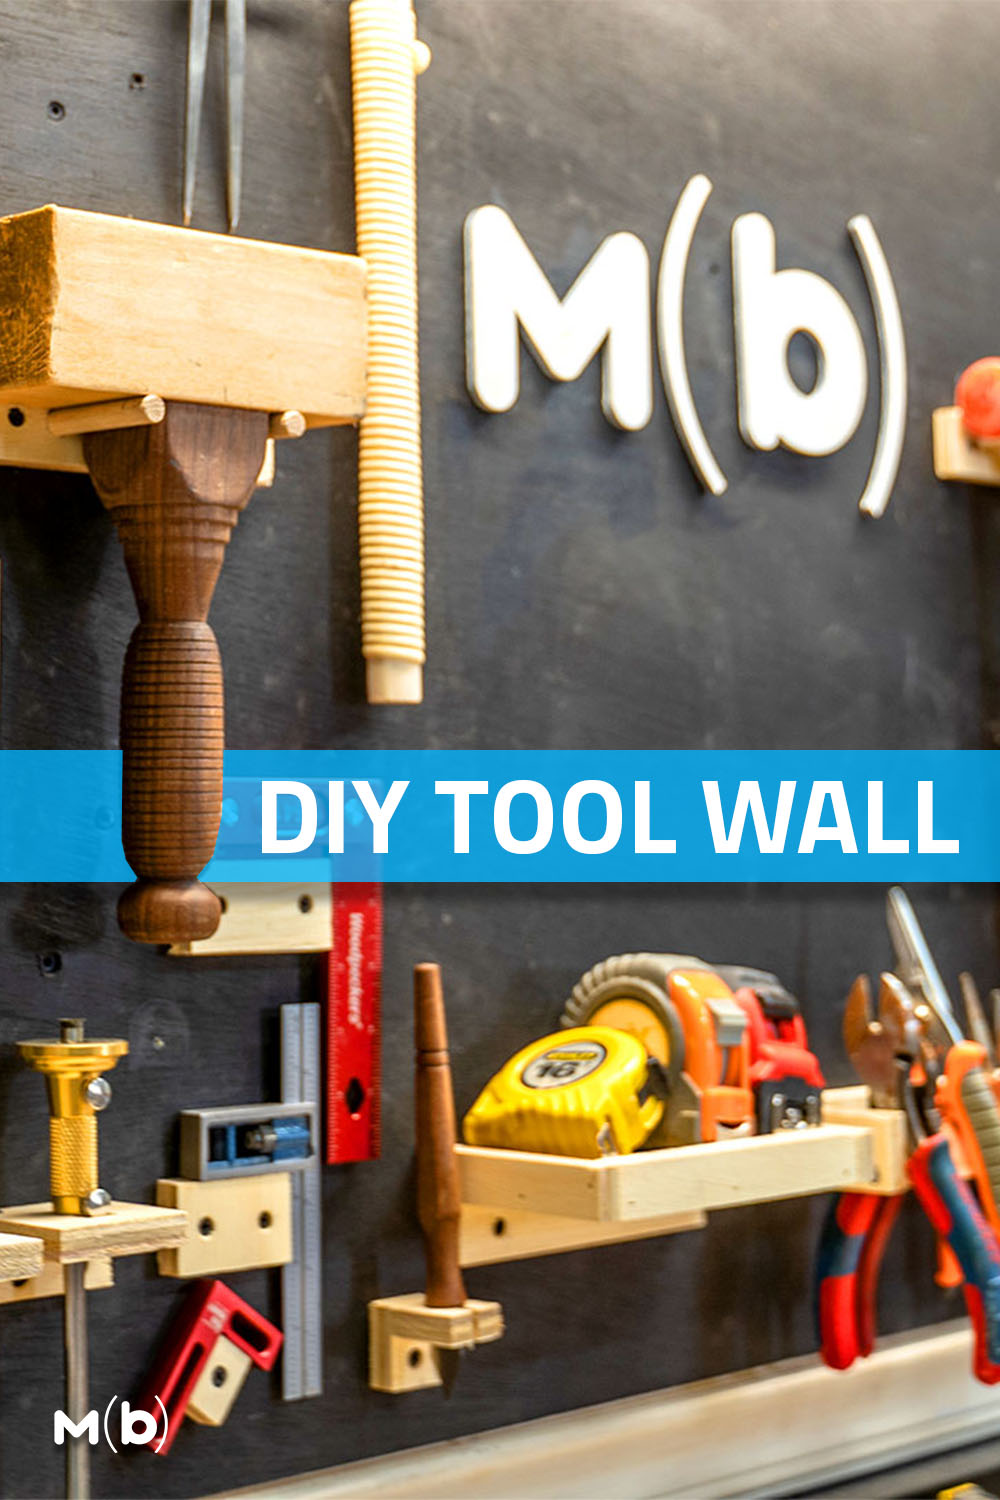 Build a DIY Tool Wall from scrap lumber that makes a perfect addition to your shop!